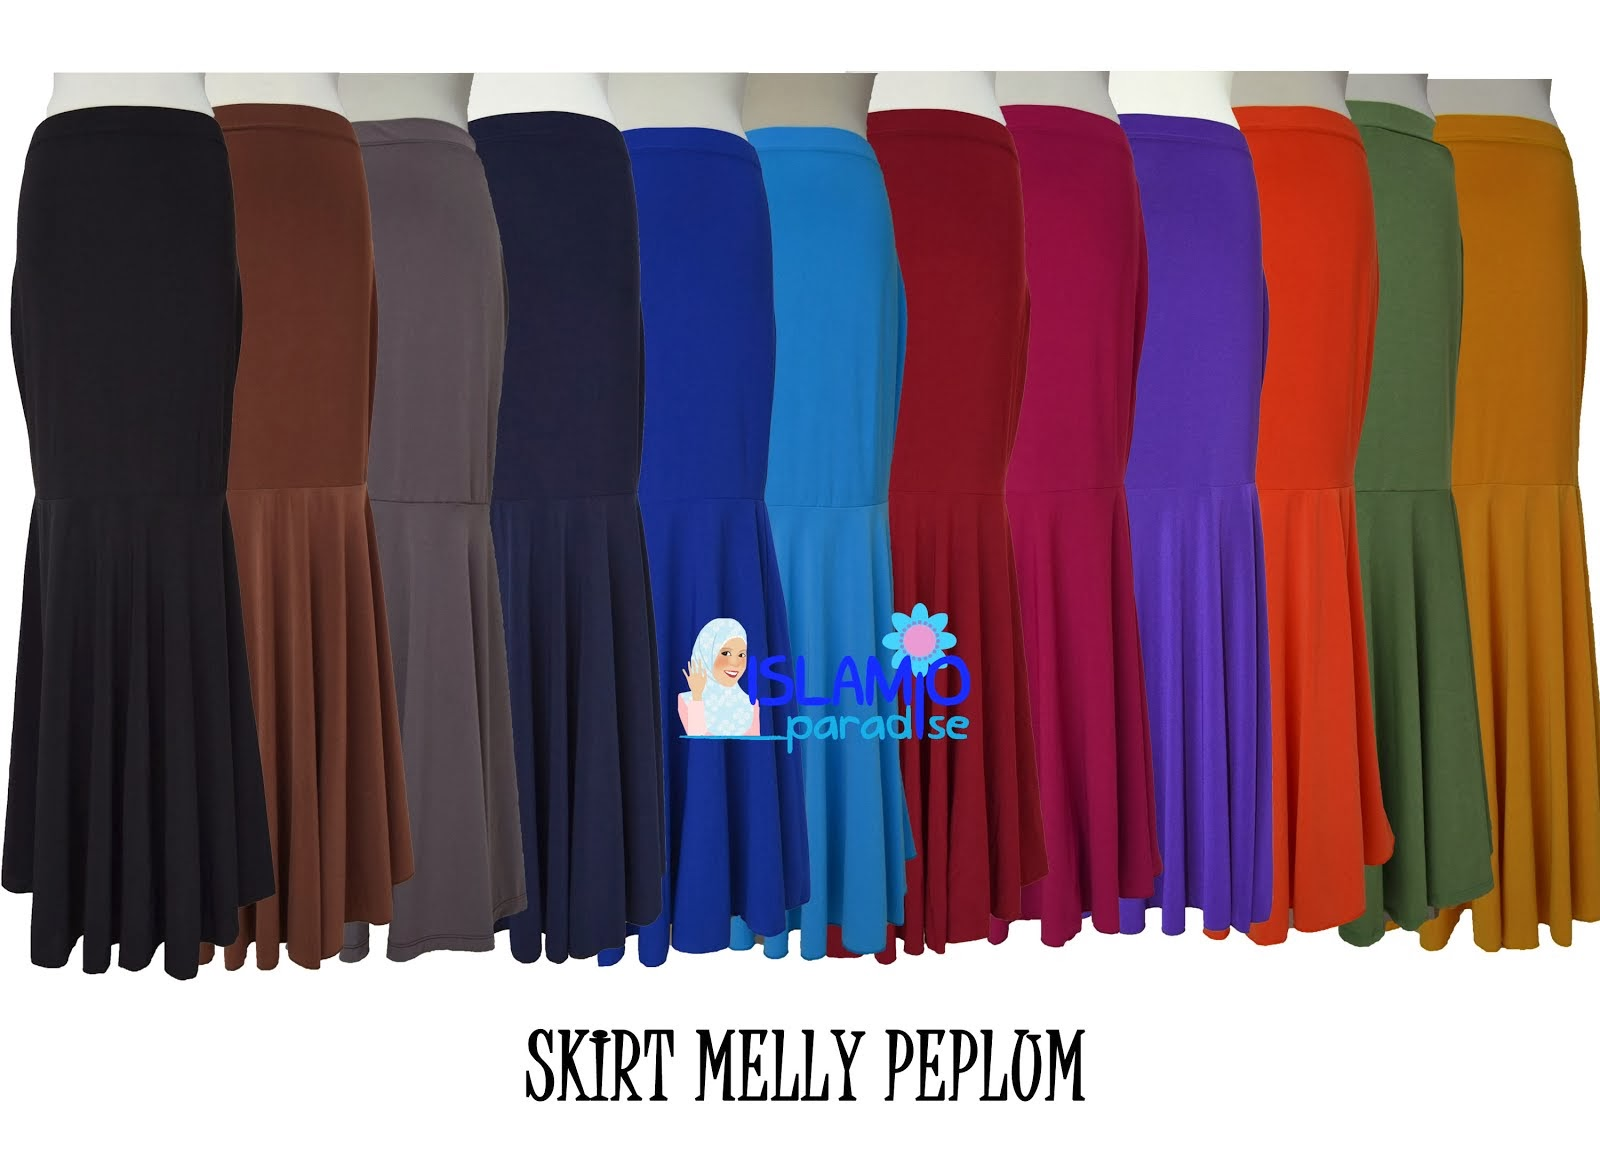 SKIRT MELLY PEPLUM